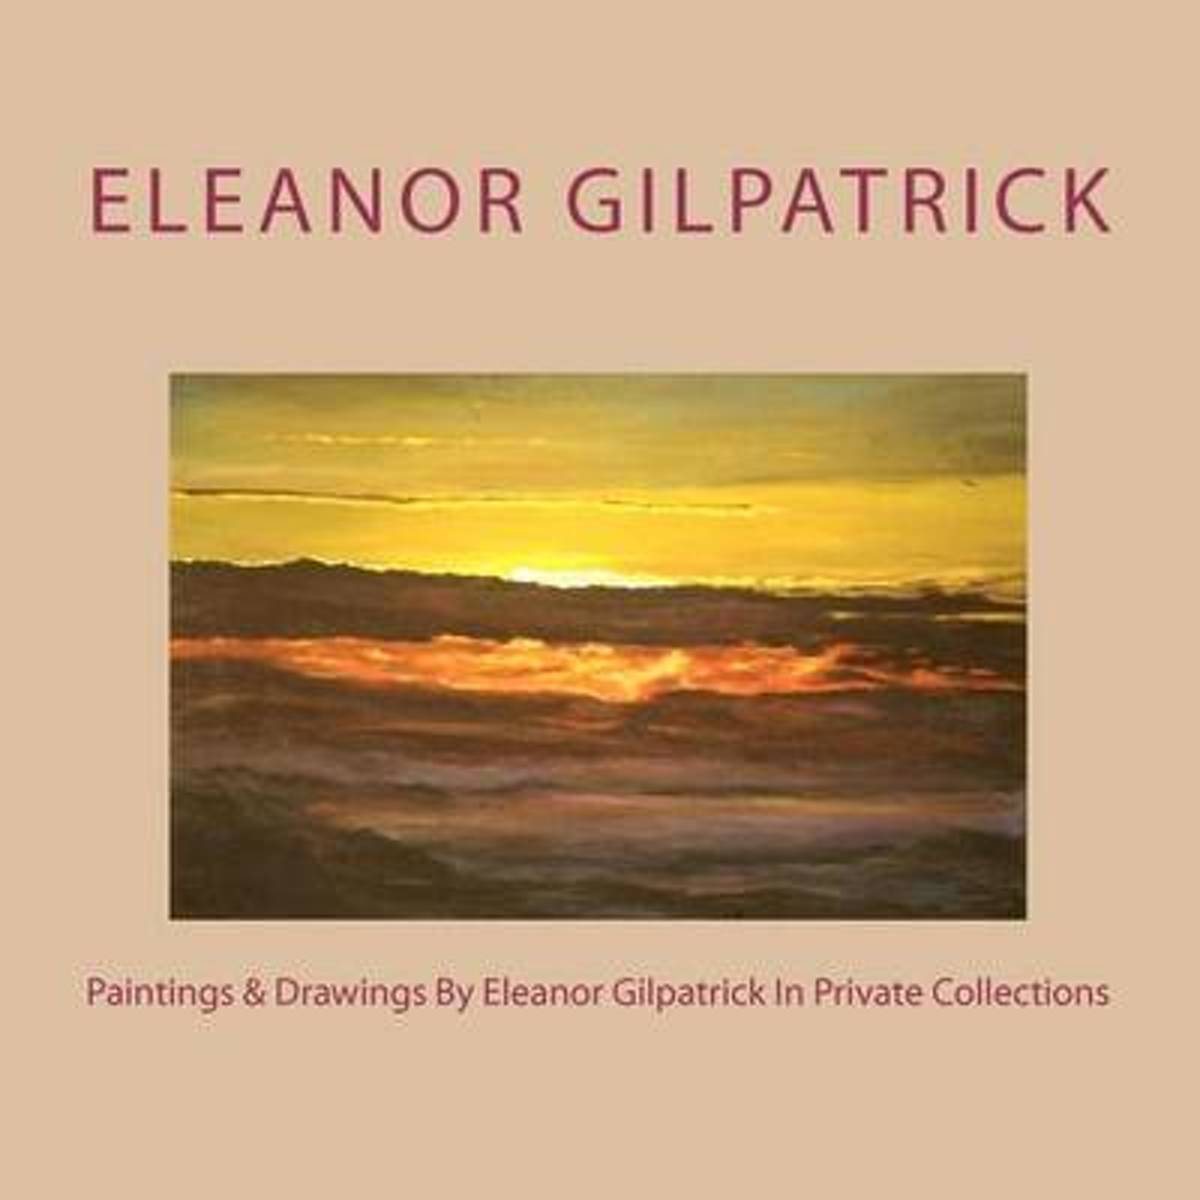 Paintings & Drawings by Eleanor Gilpatrick in Private Collections